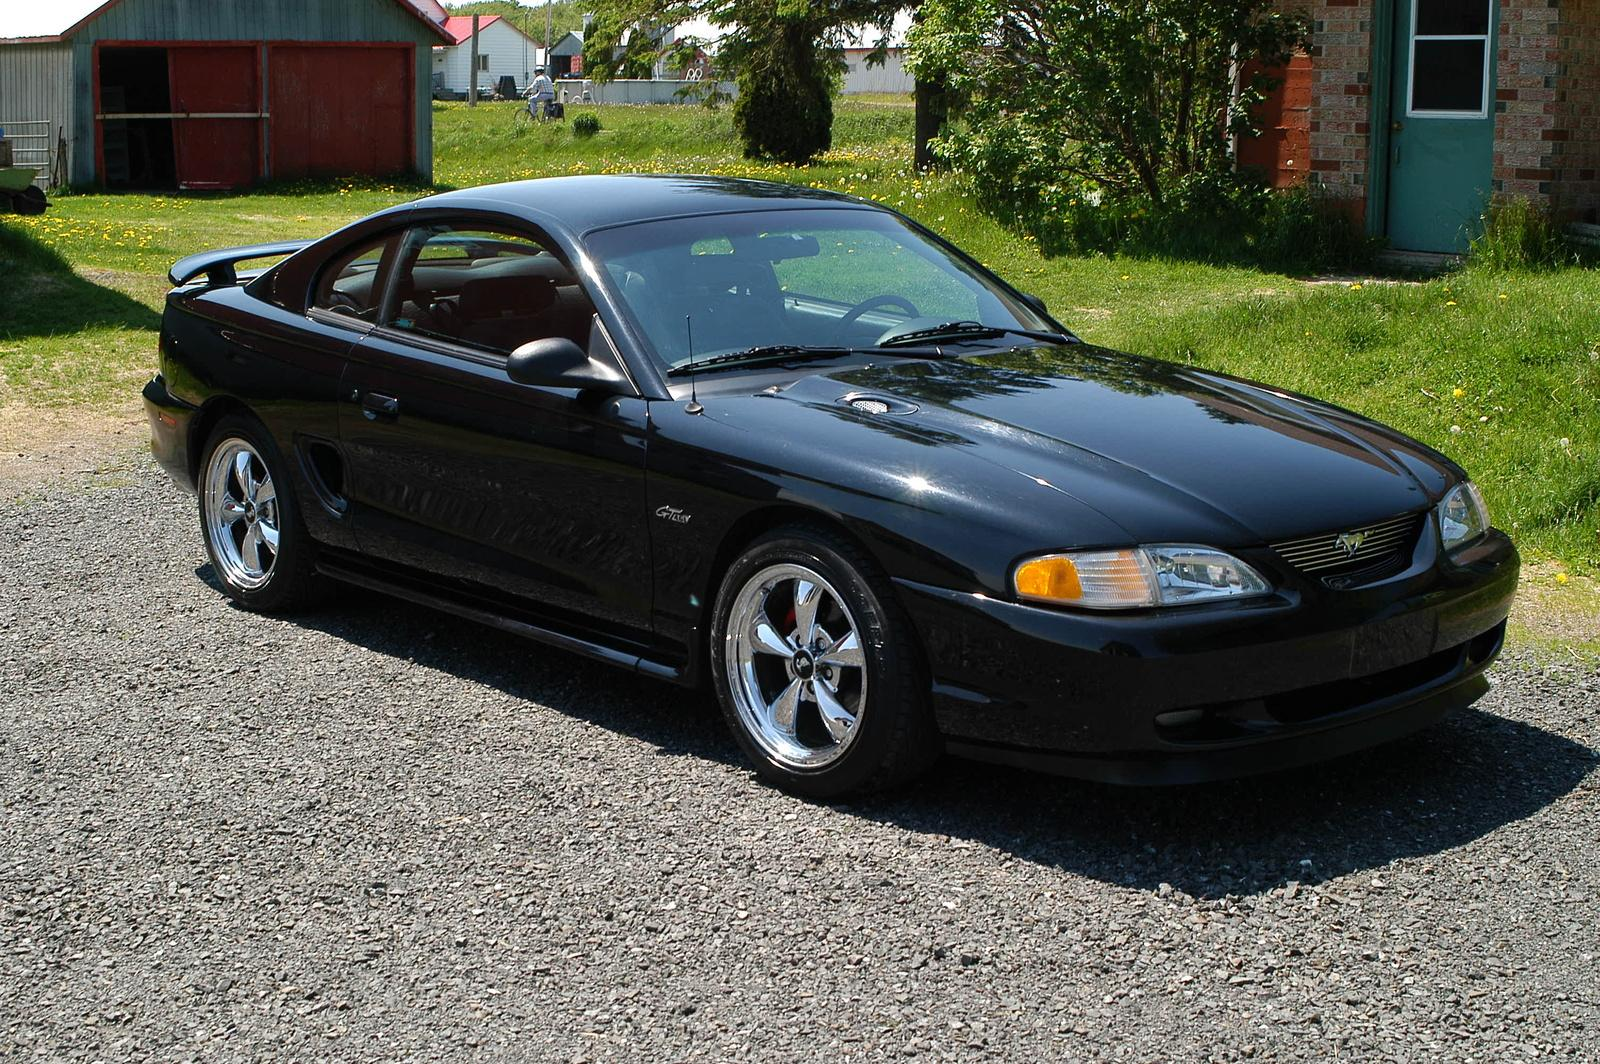 Ford 1998 ford mustang specs : 1998 Ford Mustang - Information and photos - ZombieDrive